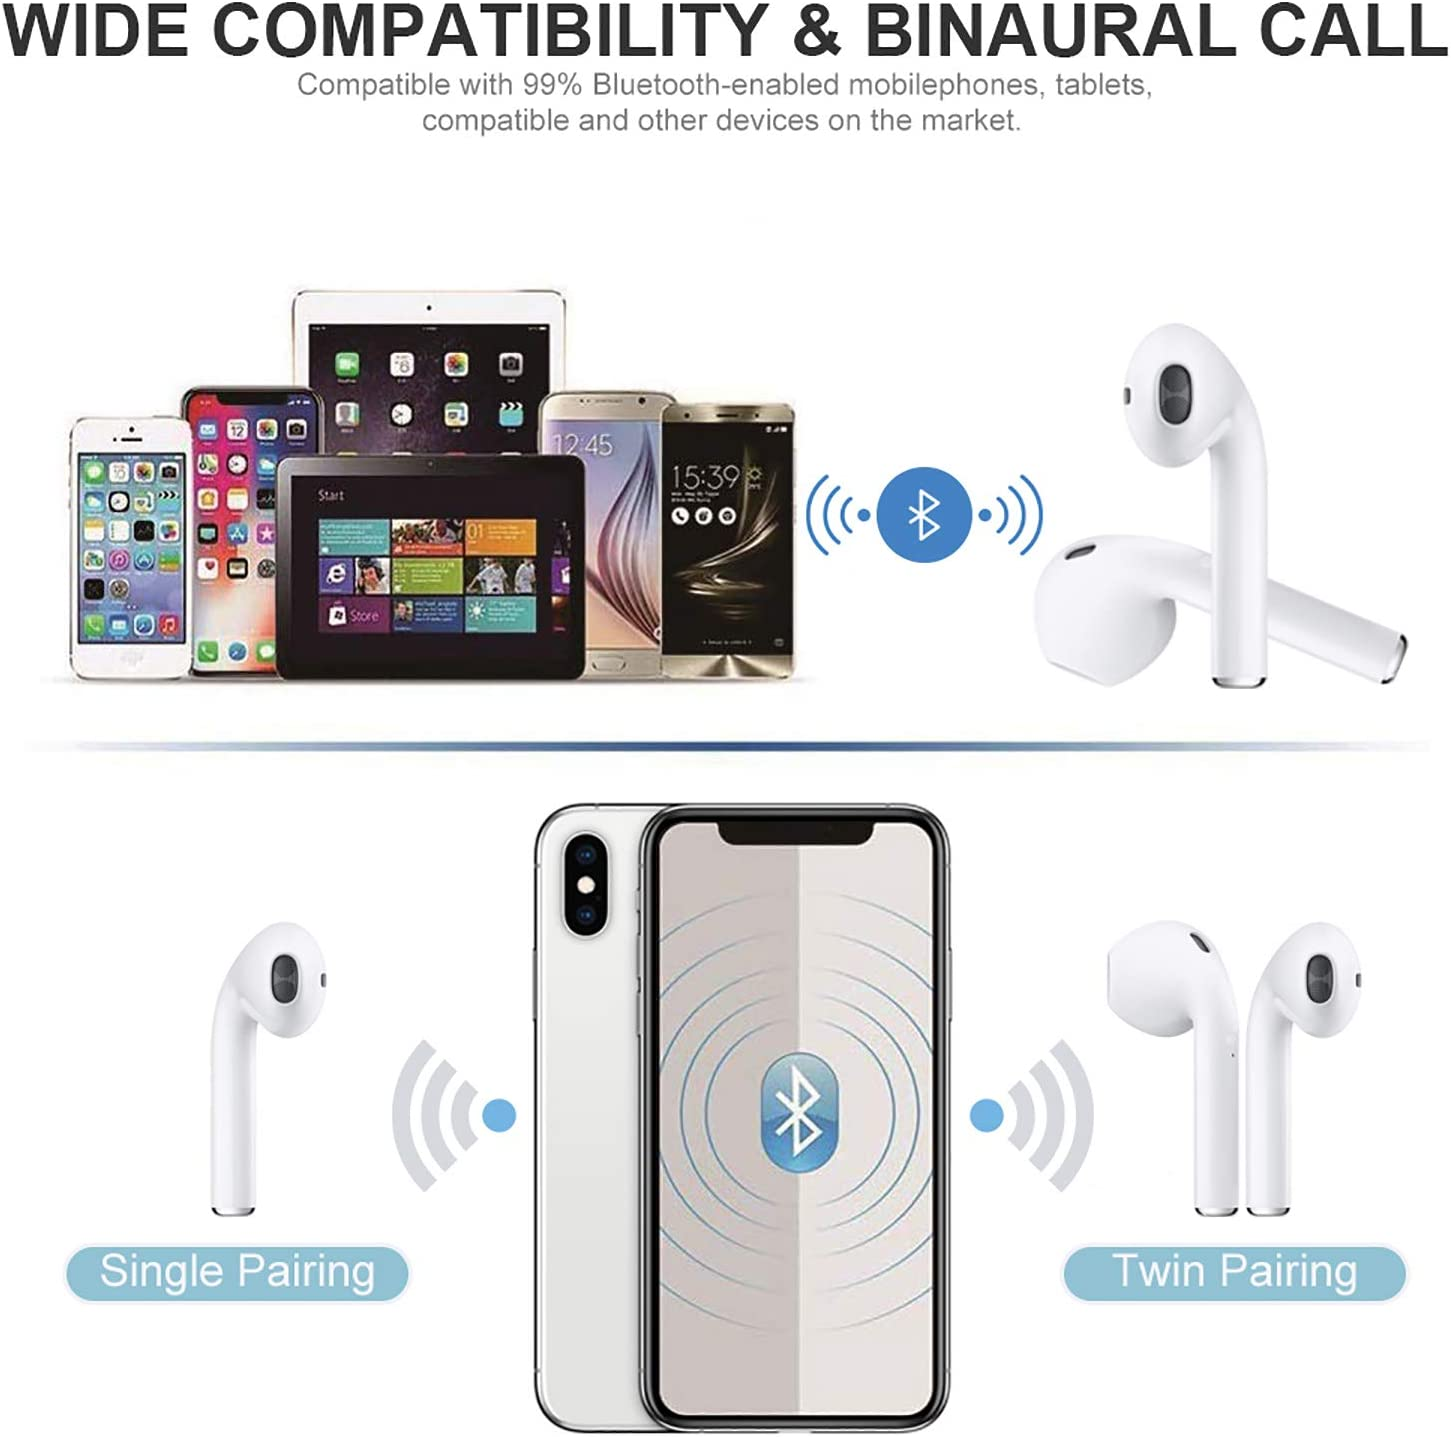 Wireless Earbuds Bluetooth 5.0 Headsets with【12Hrs Charging Case】IPX5 Waterproof Pop-ups Auto Pairing for Apple Airpods Android//iPhone Samsung 3D Stereo Headphones in-Ear Ear Buds Built-in Mic